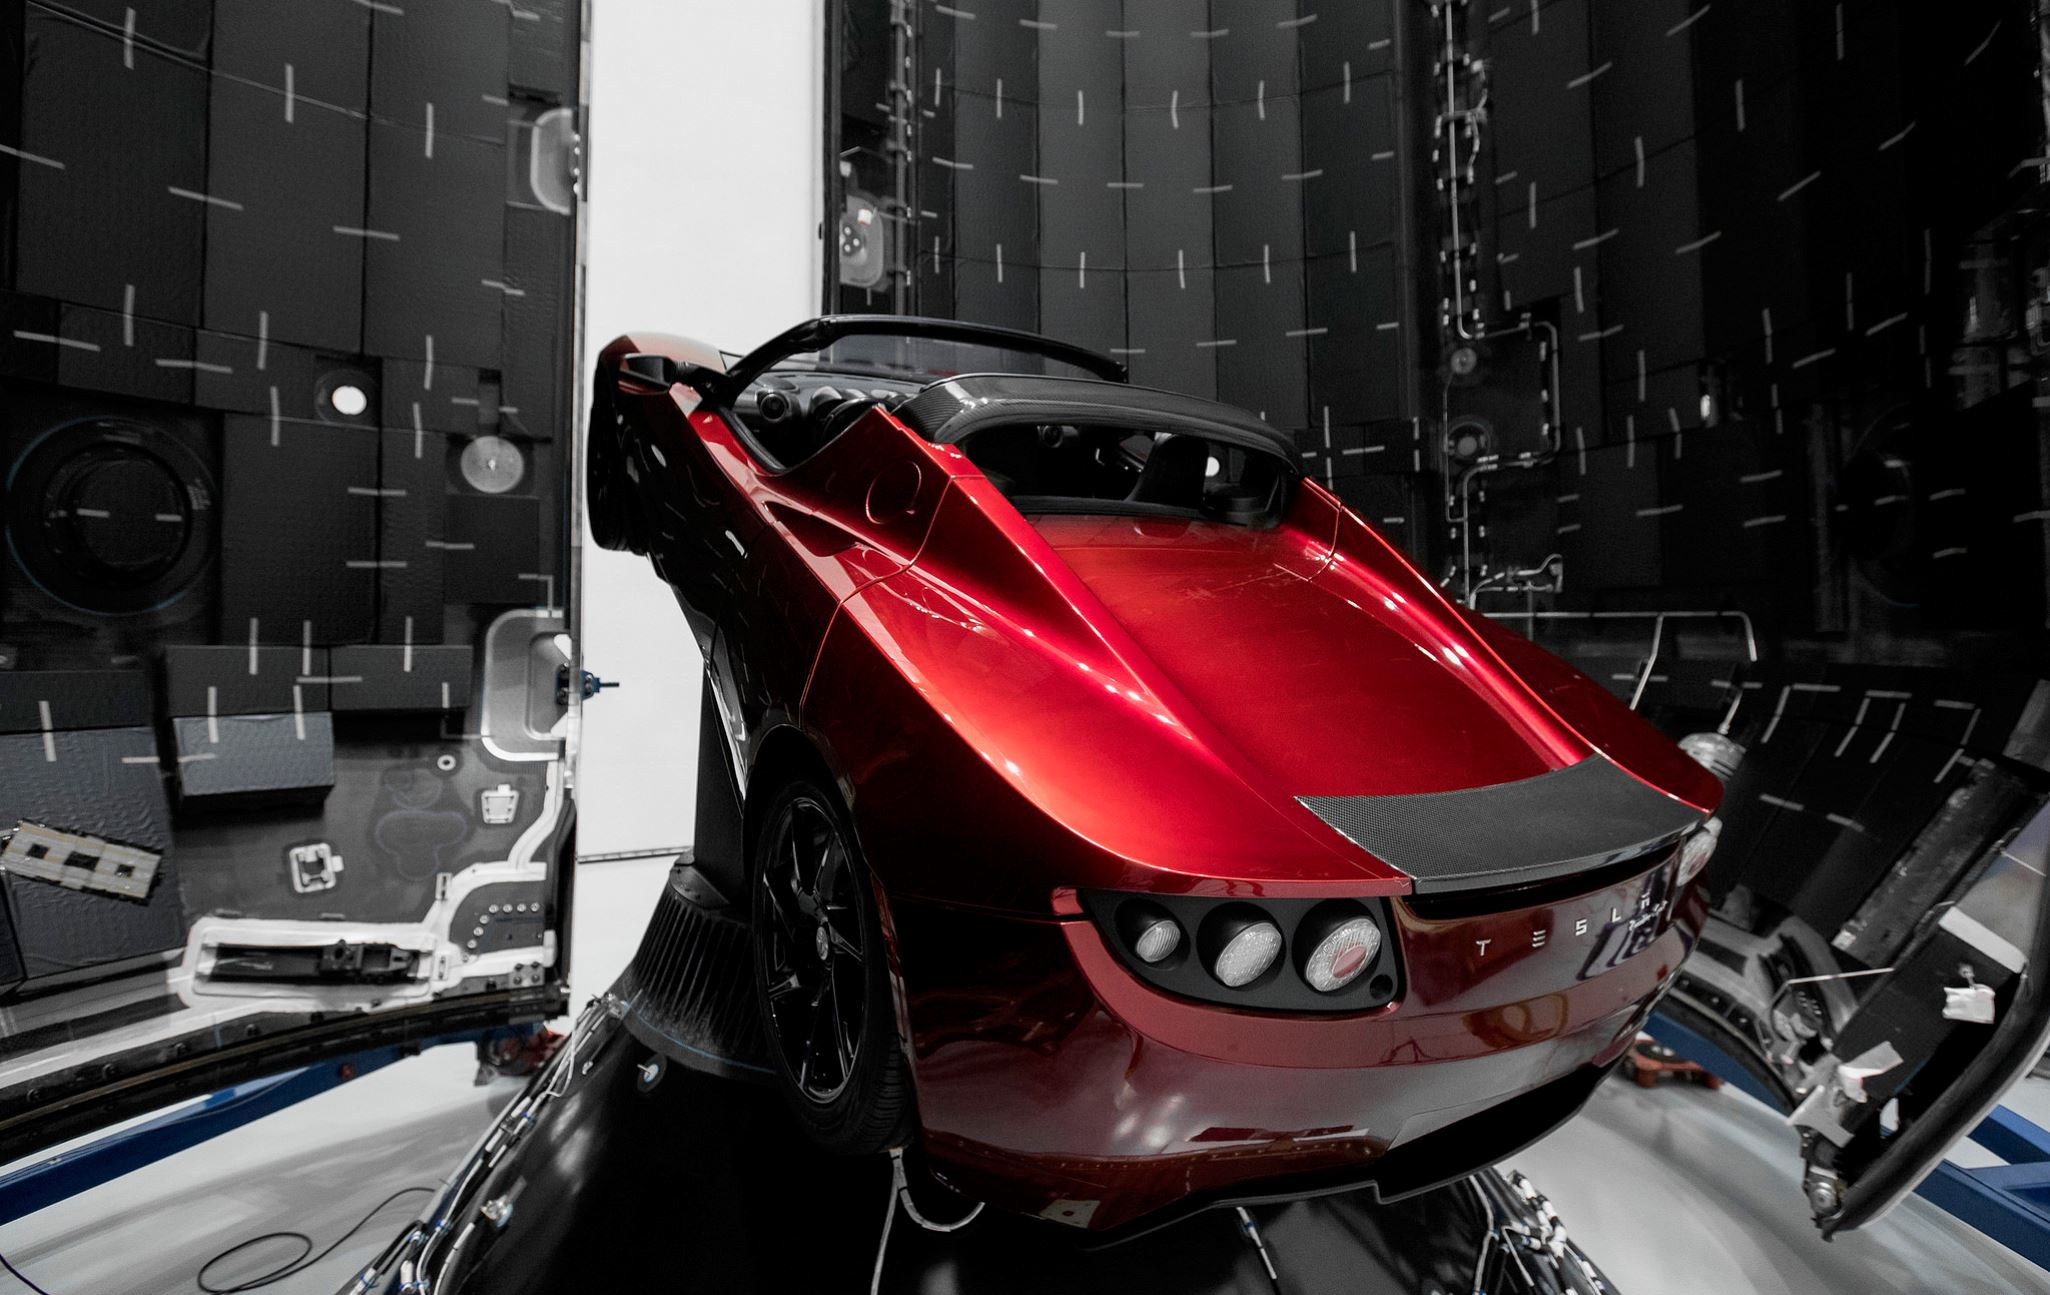 Falcon Heavy's first payload will be a Tesla Roadster, set to become the world's fastest car following its launch into a heliocentric orbit - Image Credit:  SpaceX via flickr